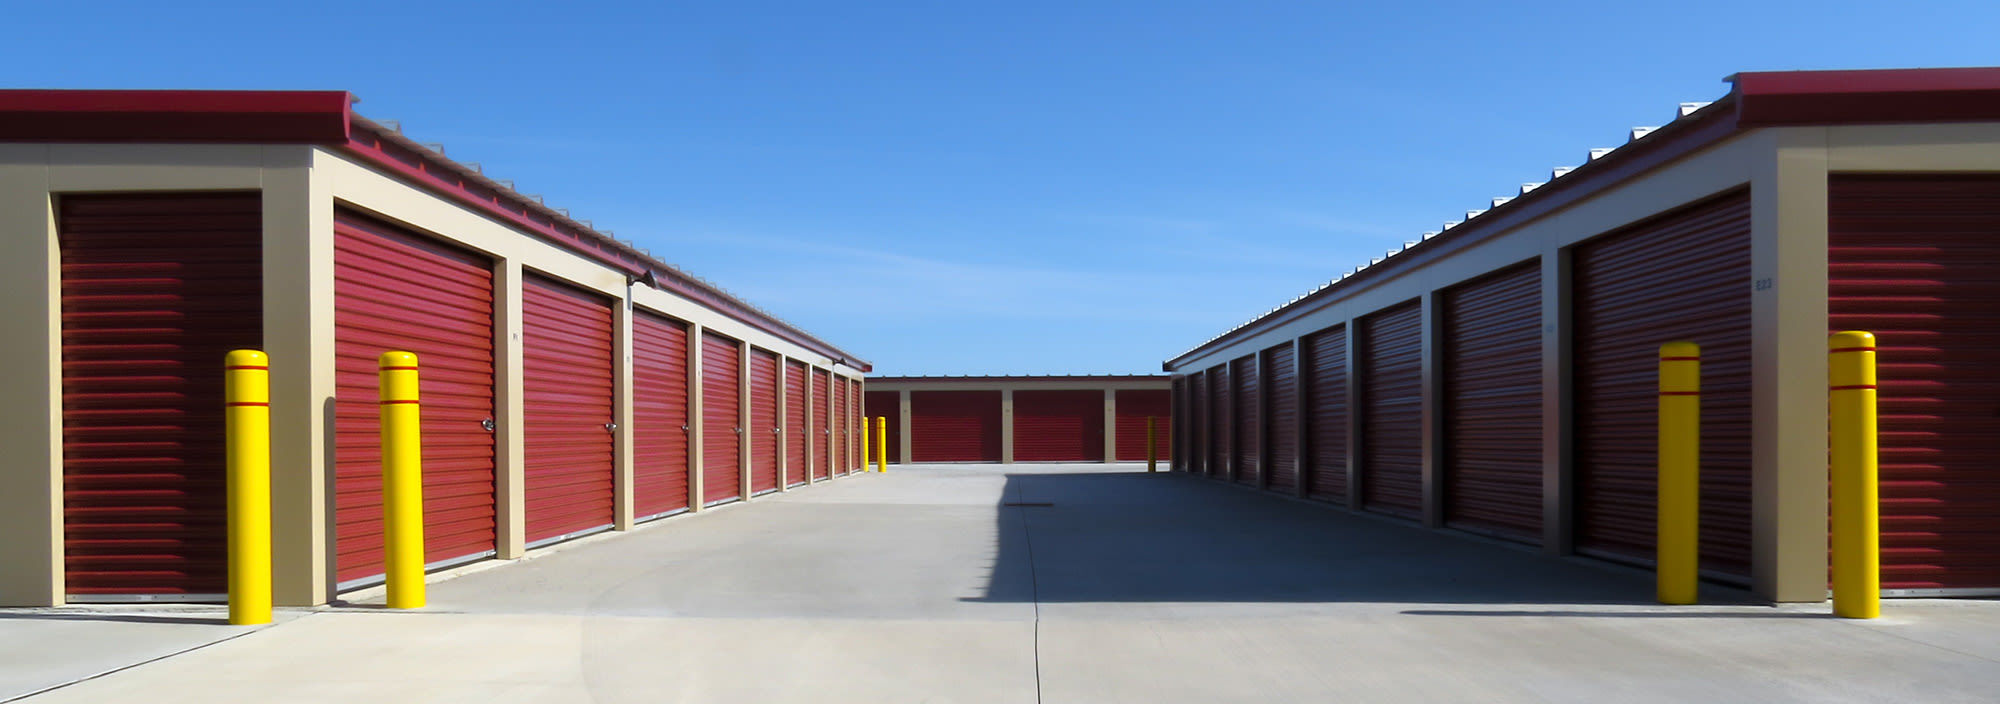 Self storage in Palmdale CA